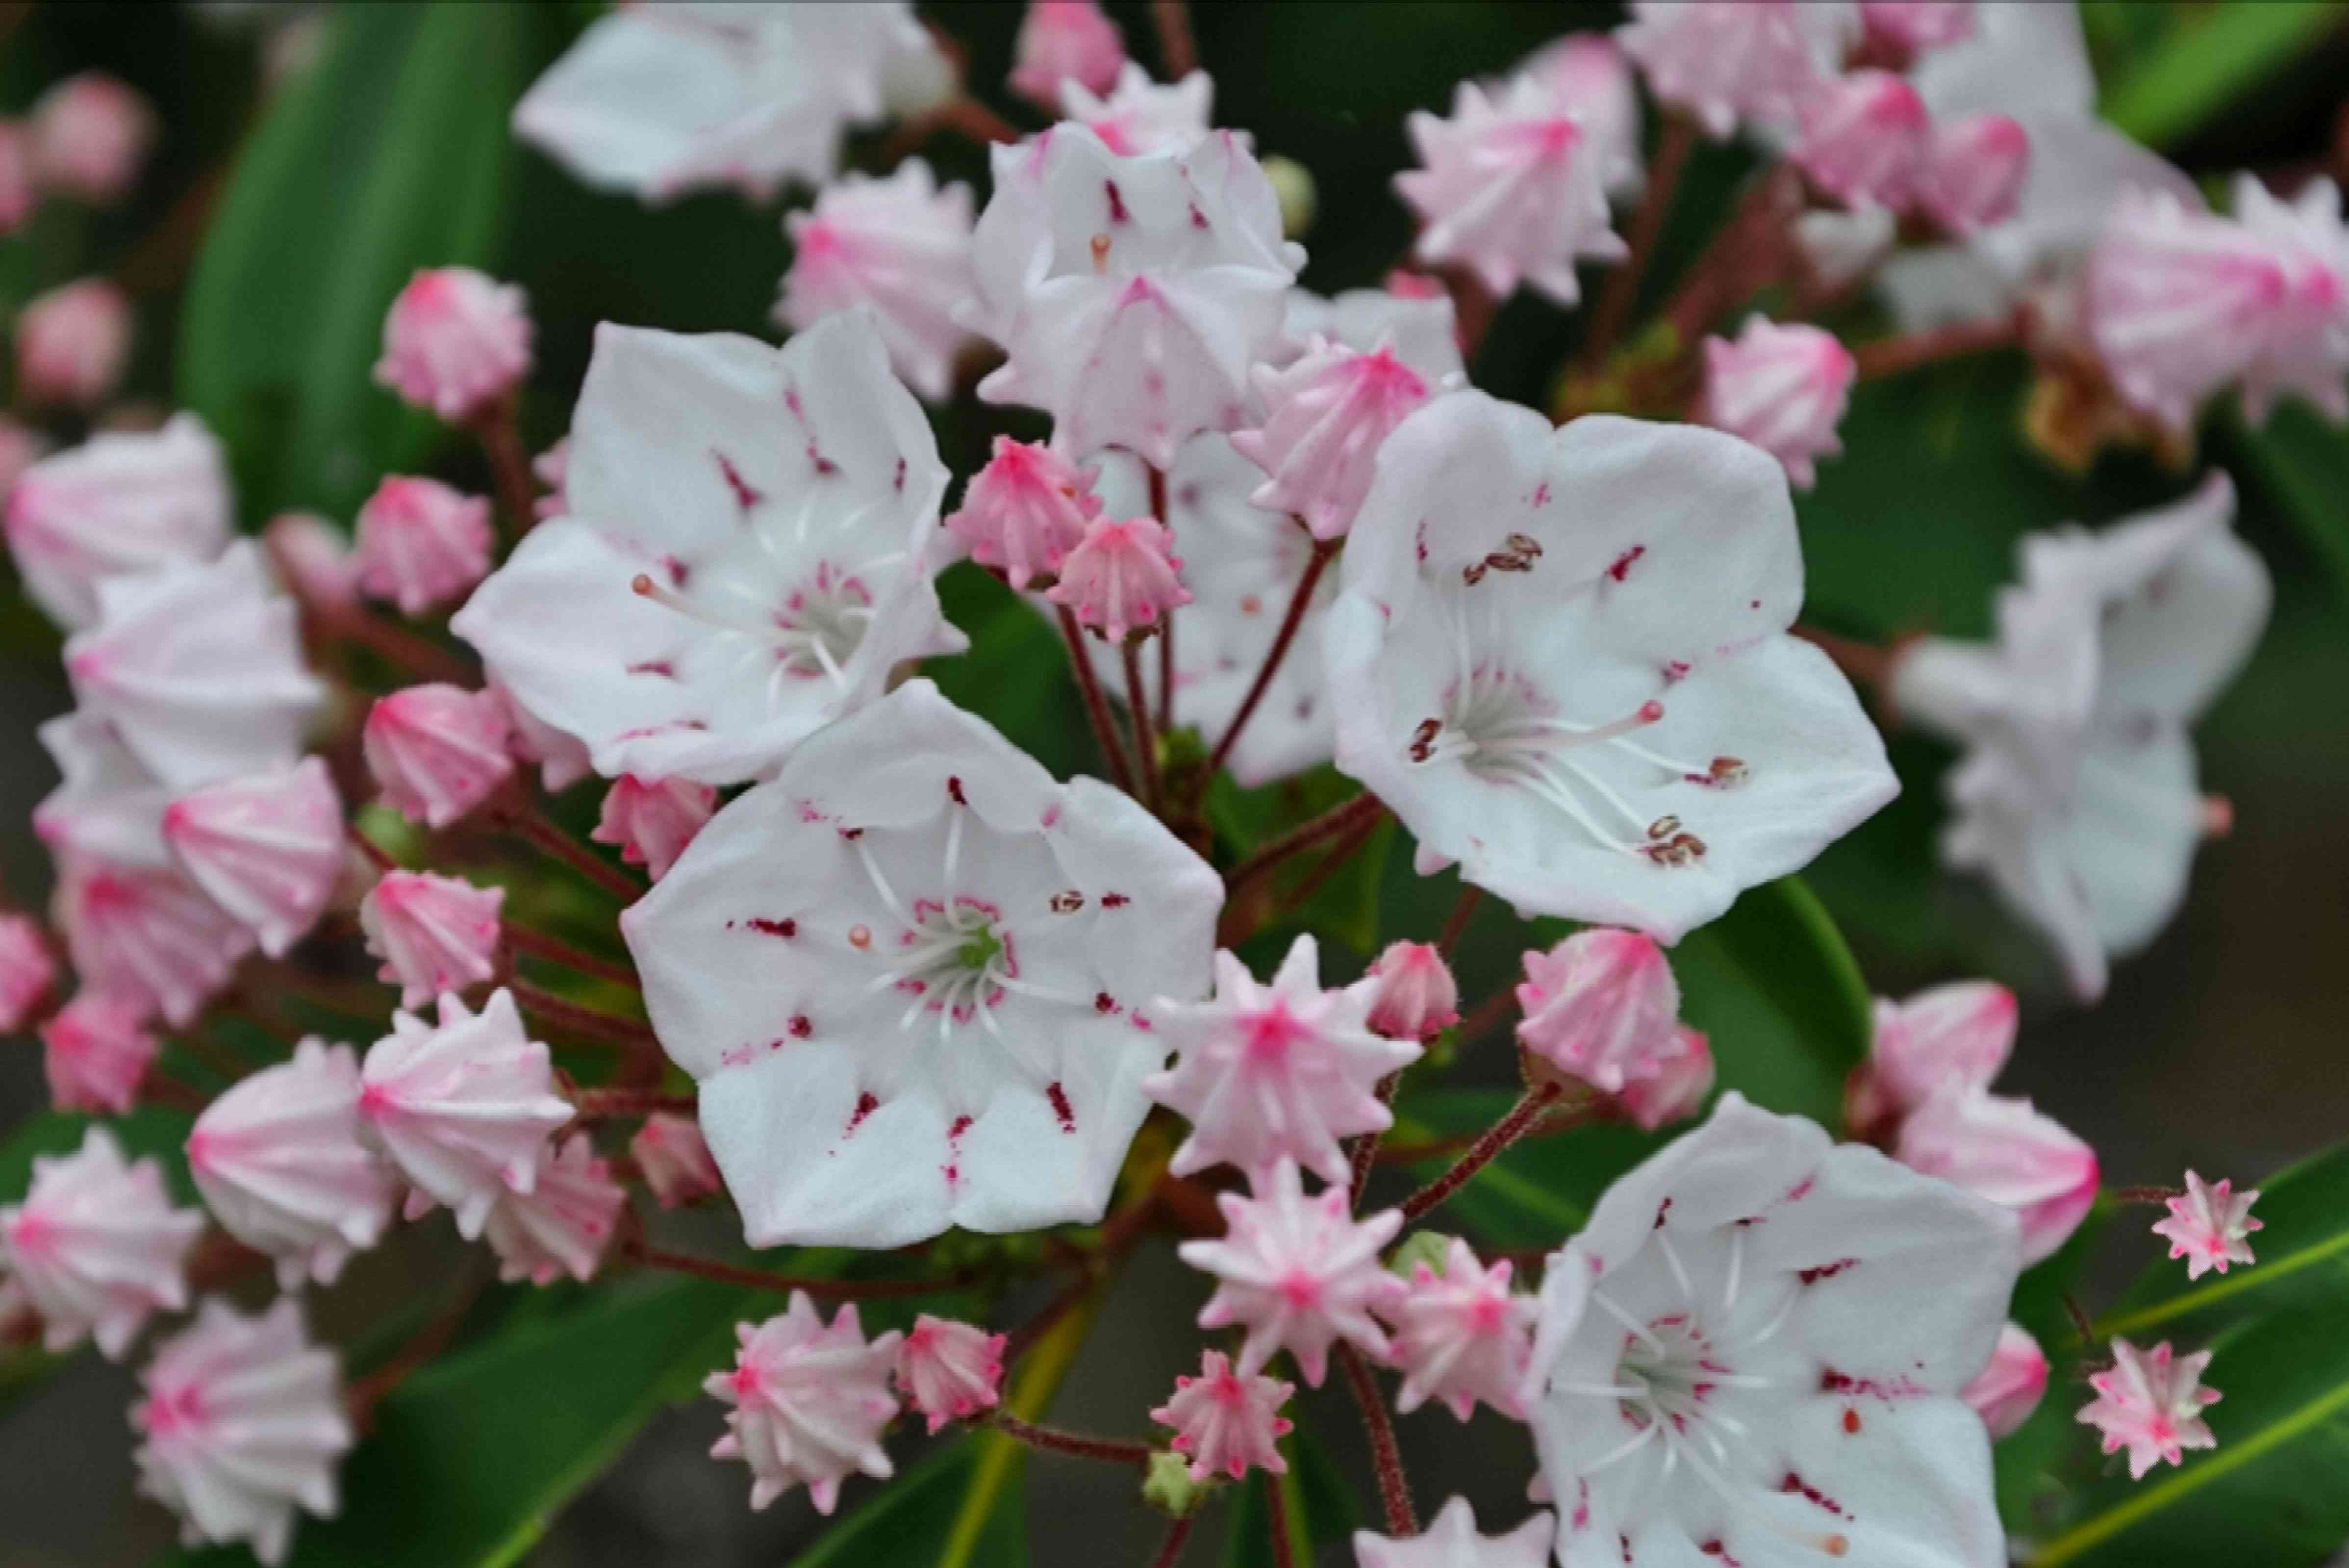 Mountain laurel plant with white flower clusters with small pink dots and pink buds